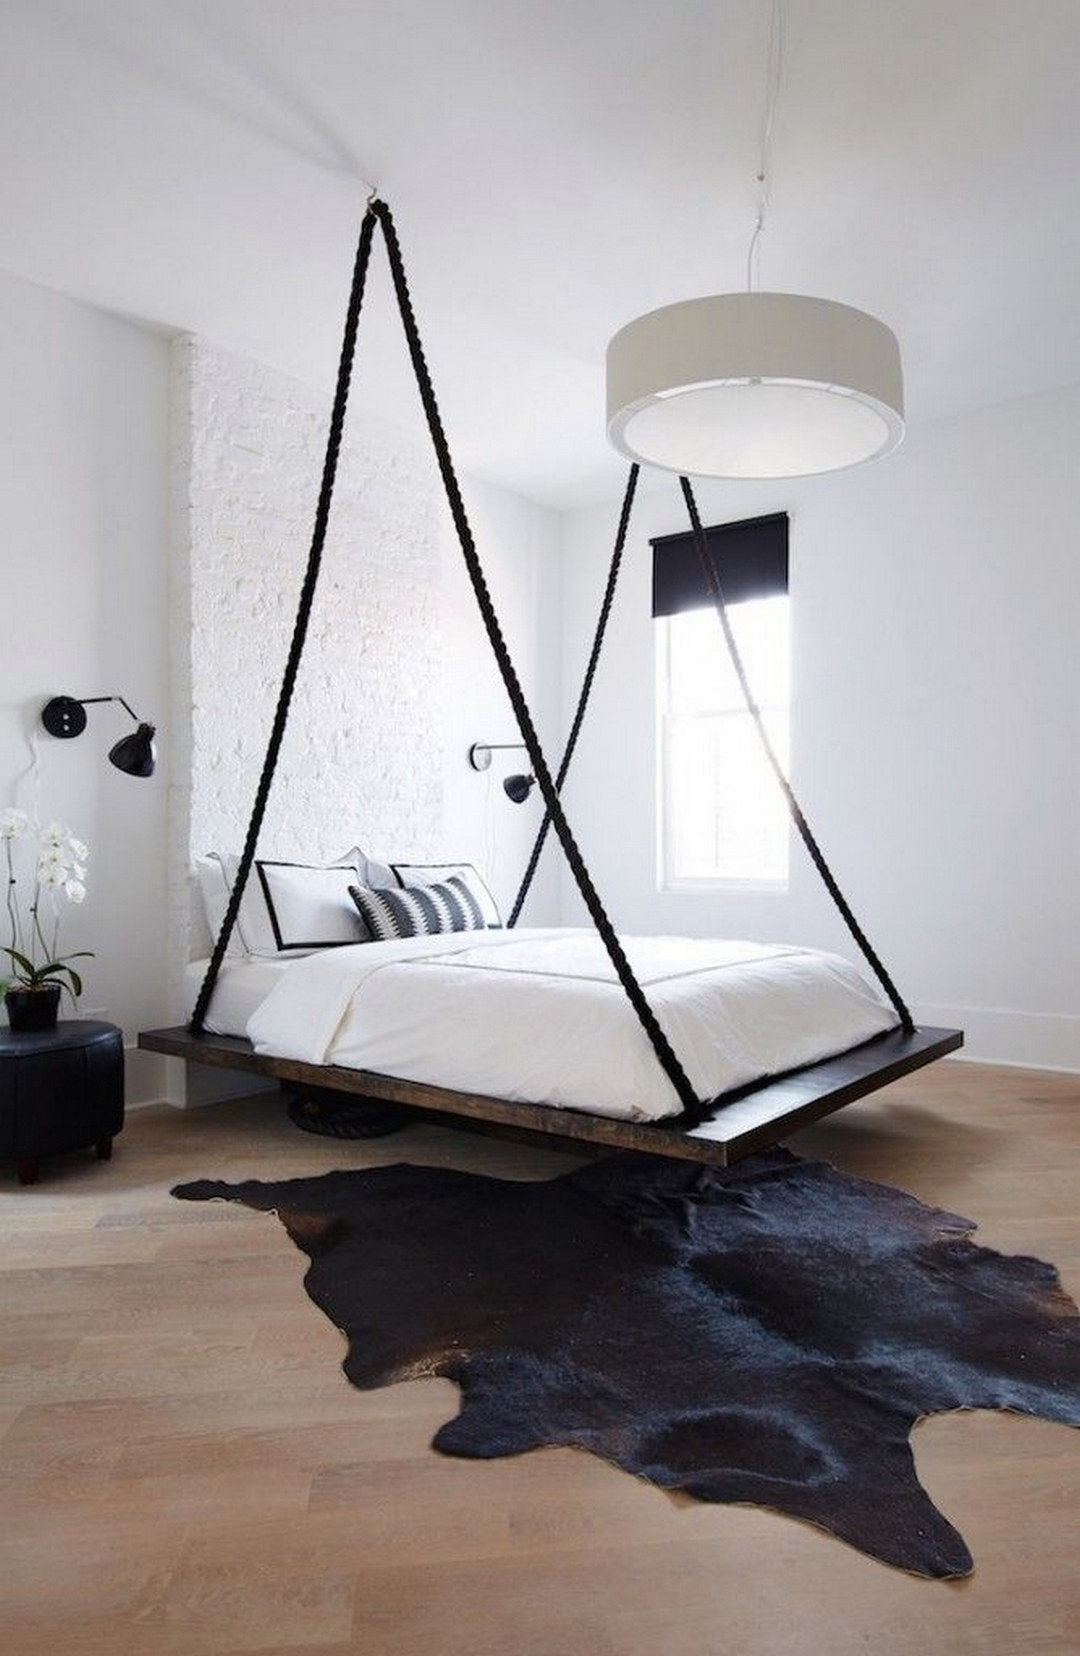 Hangend Bed 70 Amazing Hanging Bed Designs Furniture Design Ideas Floating